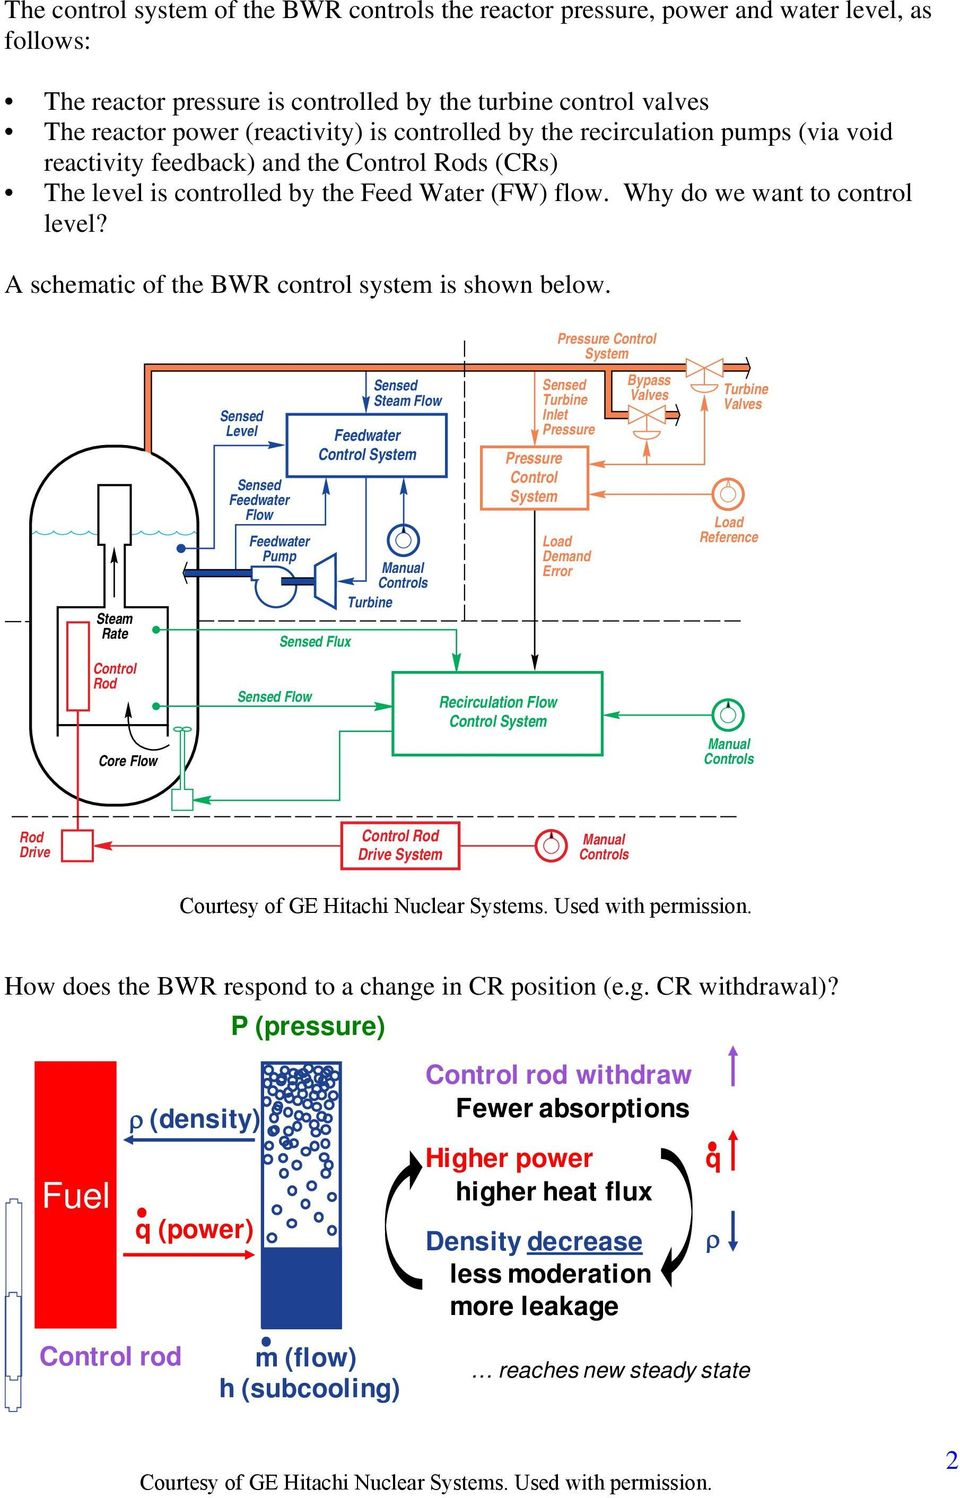 A schematic of the BWR control system is shown below.